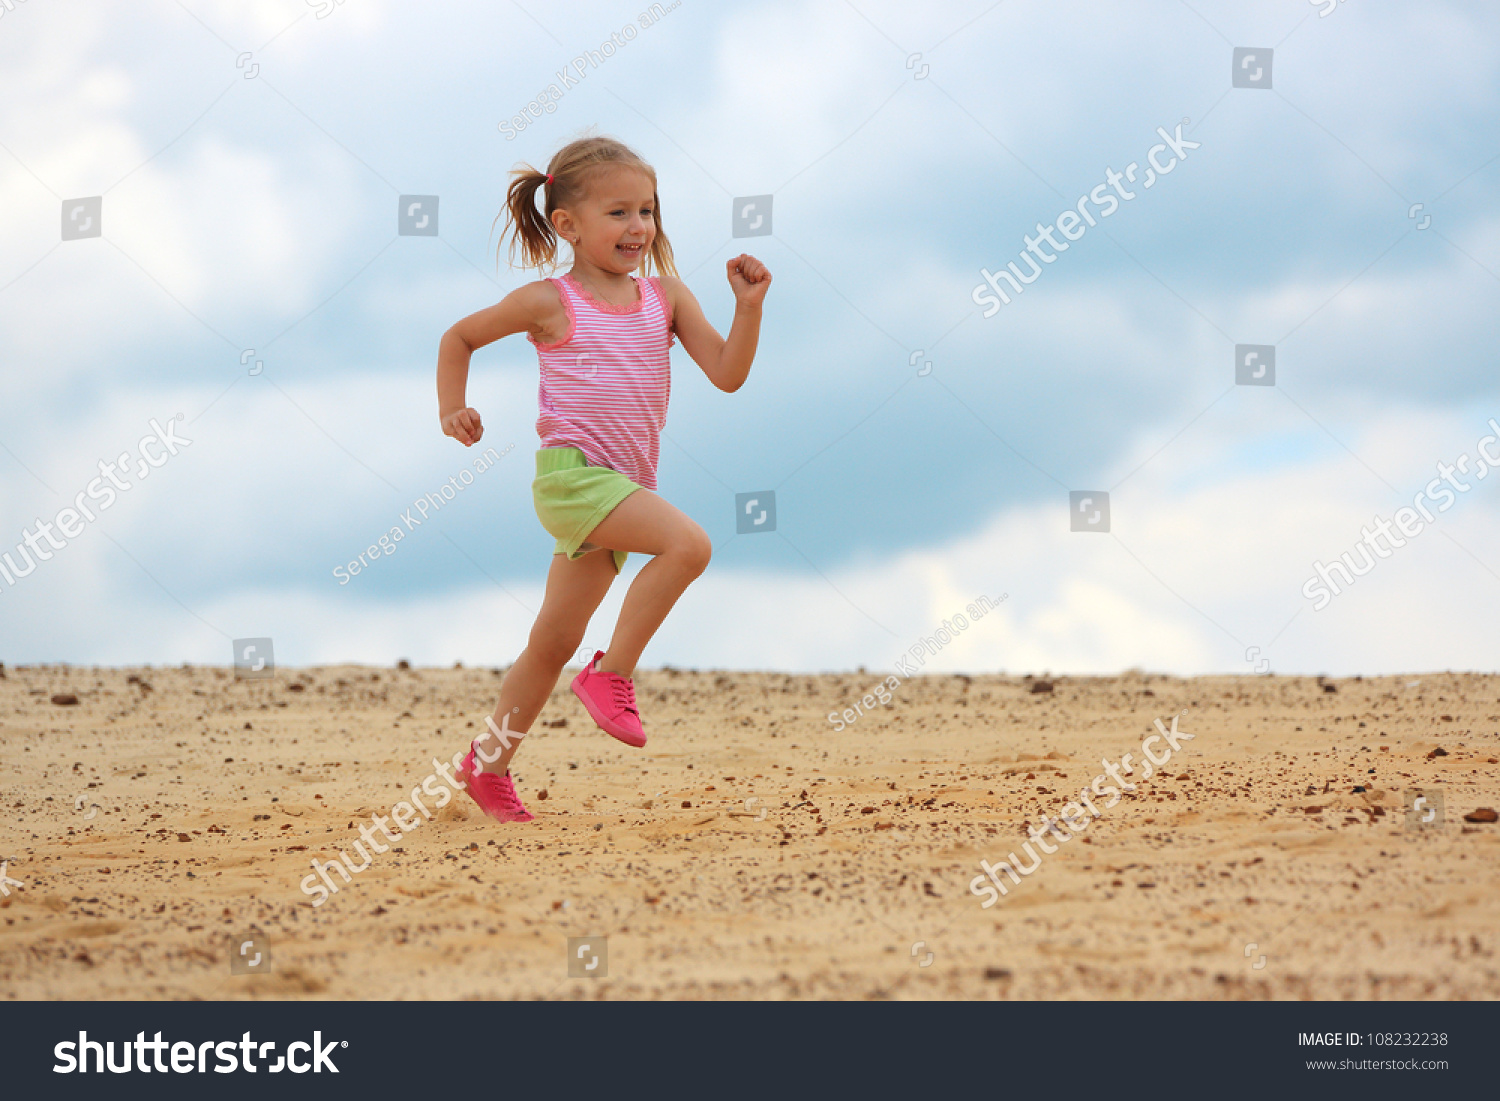 Cute Kid Wallpapers Free Download Little Girl Running Sand Stock Photo 108232238 Shutterstock